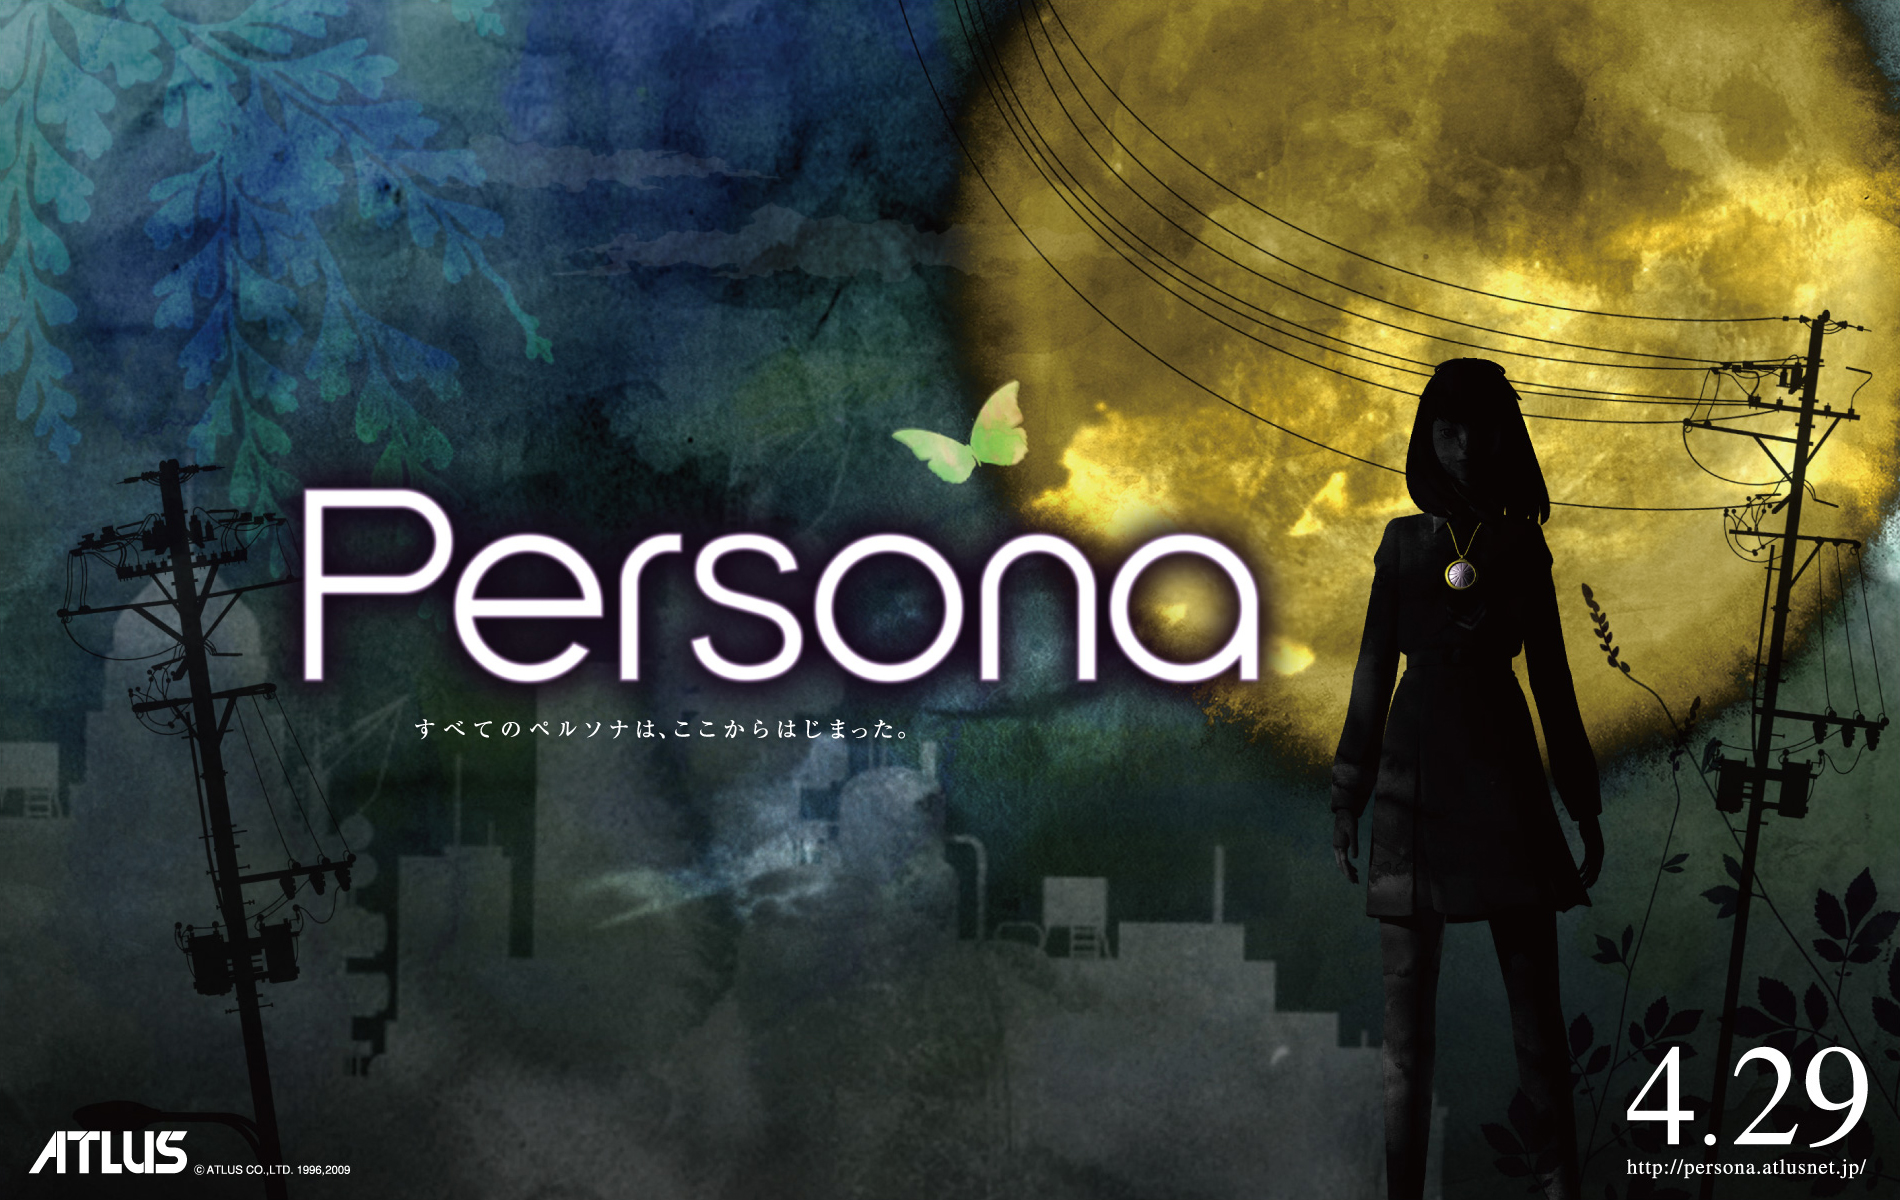 Shin megami tensei persona wallpaper watch the latest gaming news voltagebd Gallery